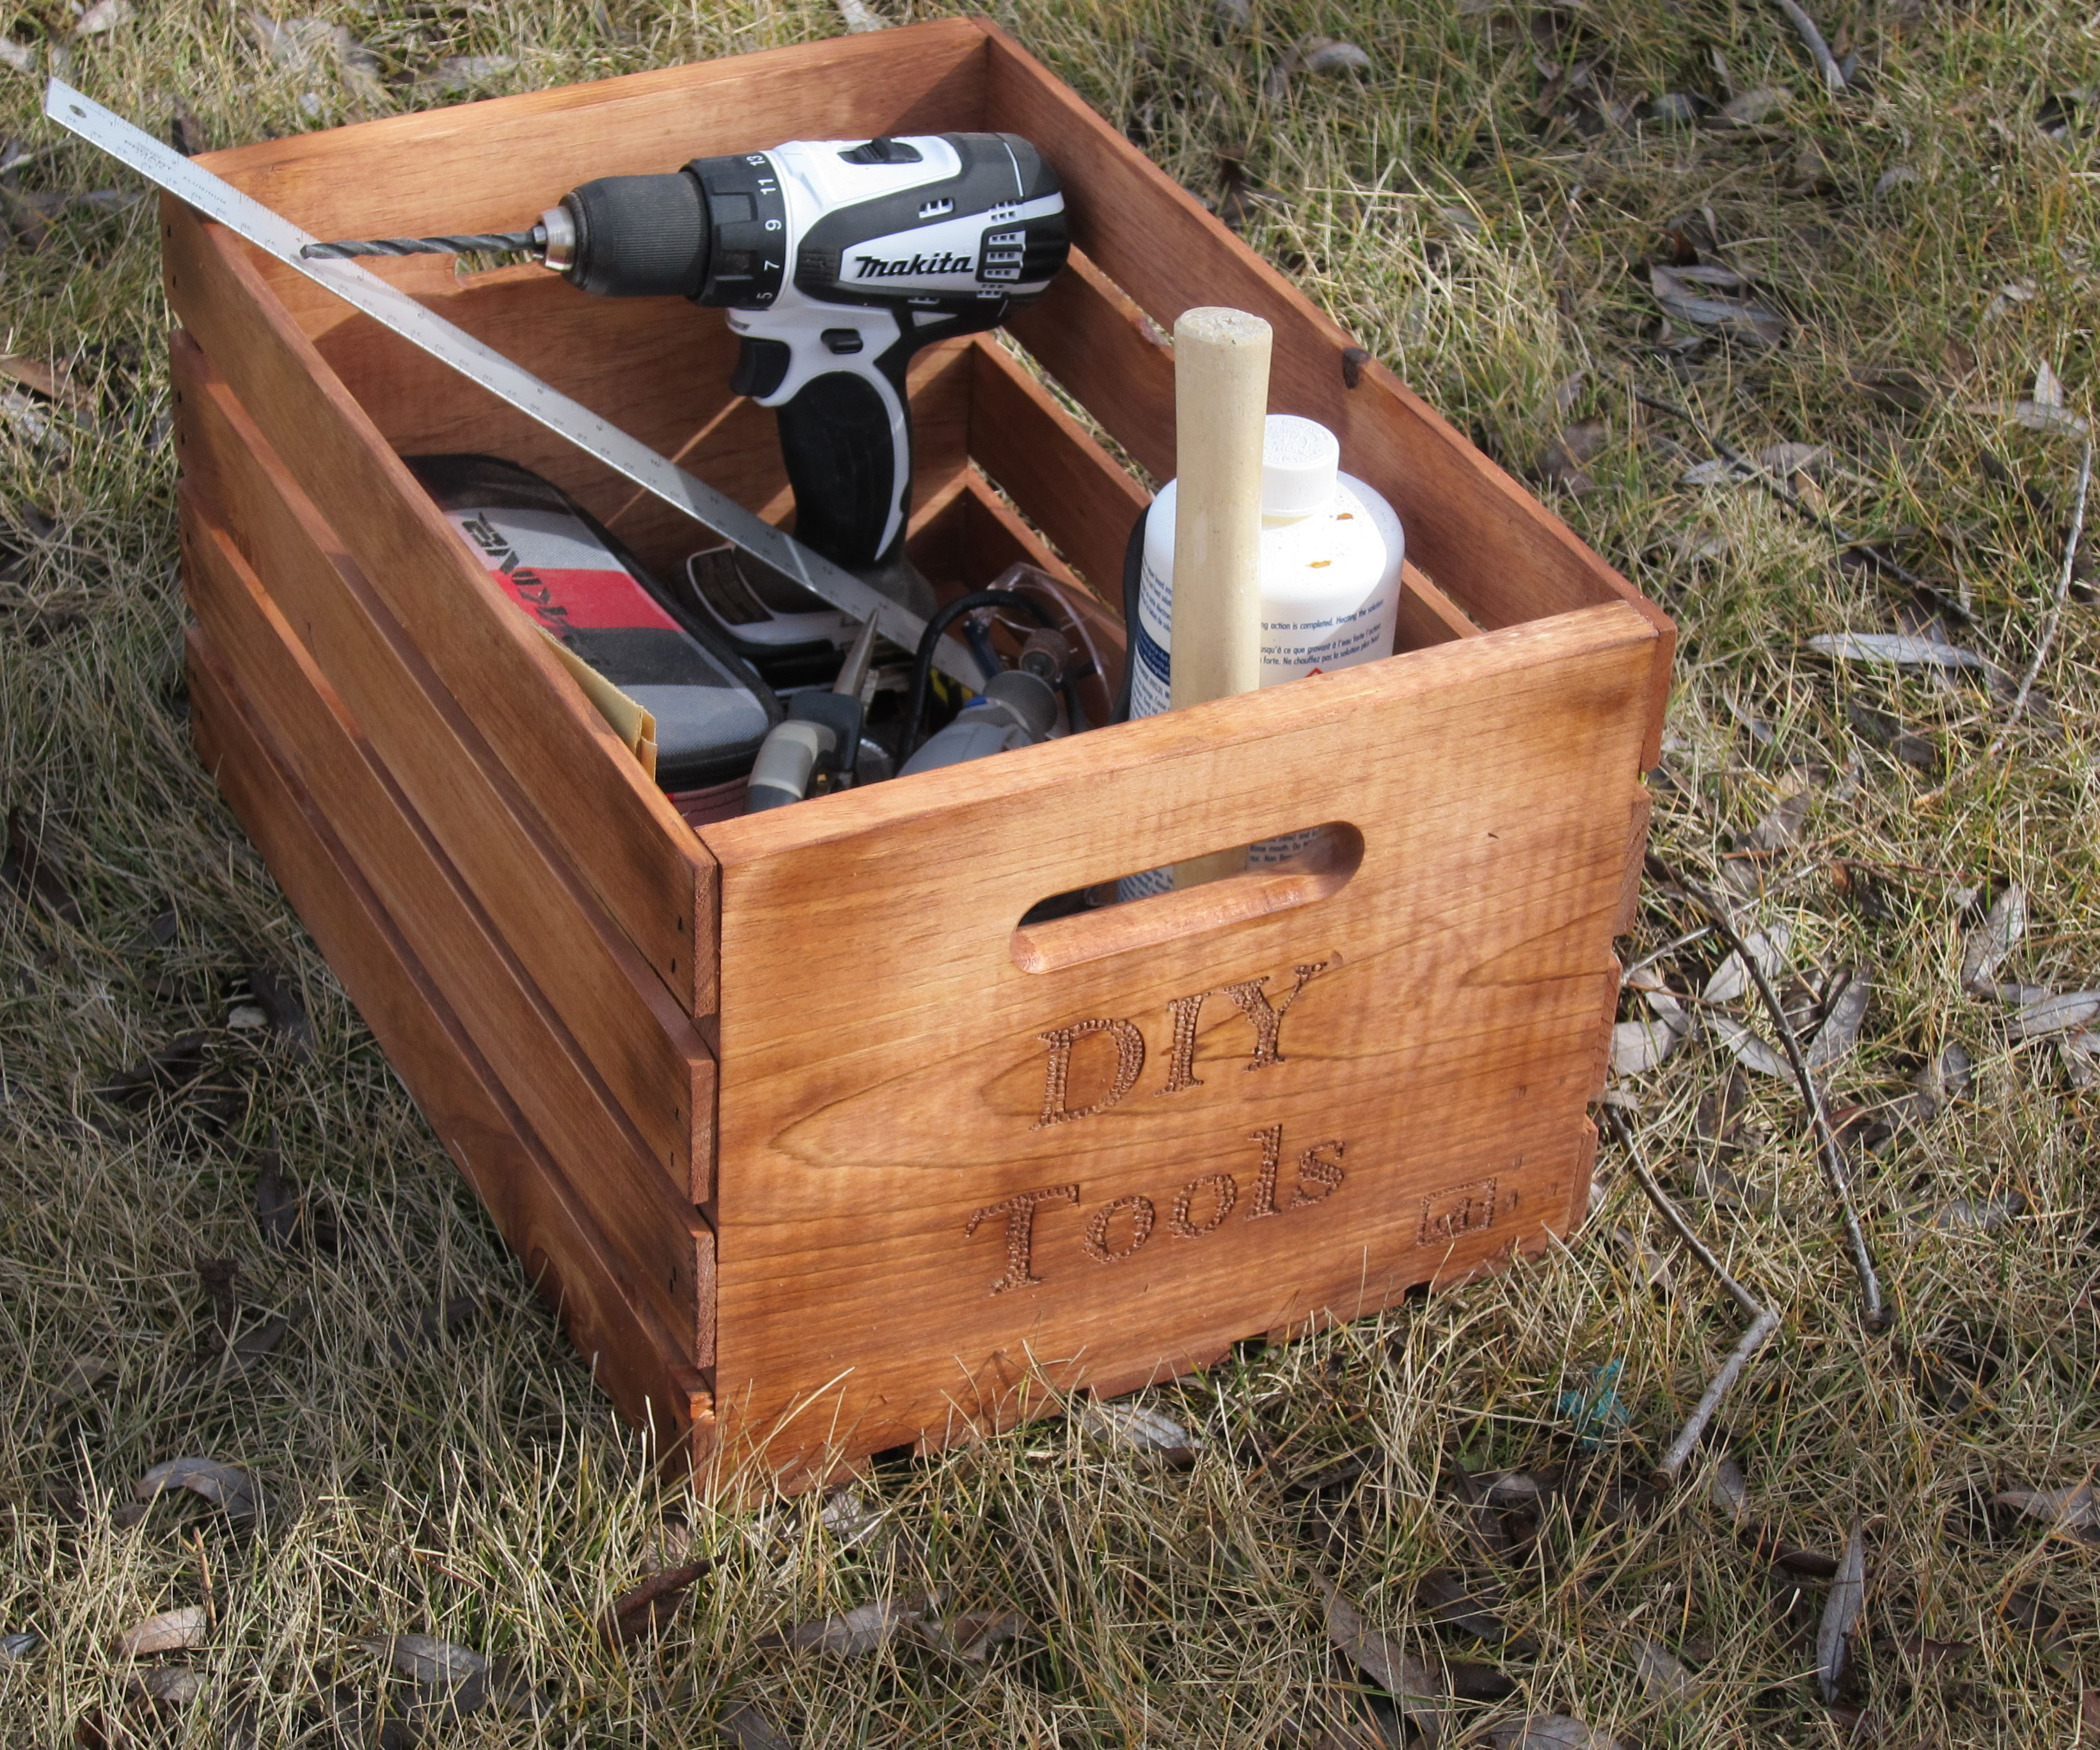 DIY Tools Crate | Wood working and just a fun project